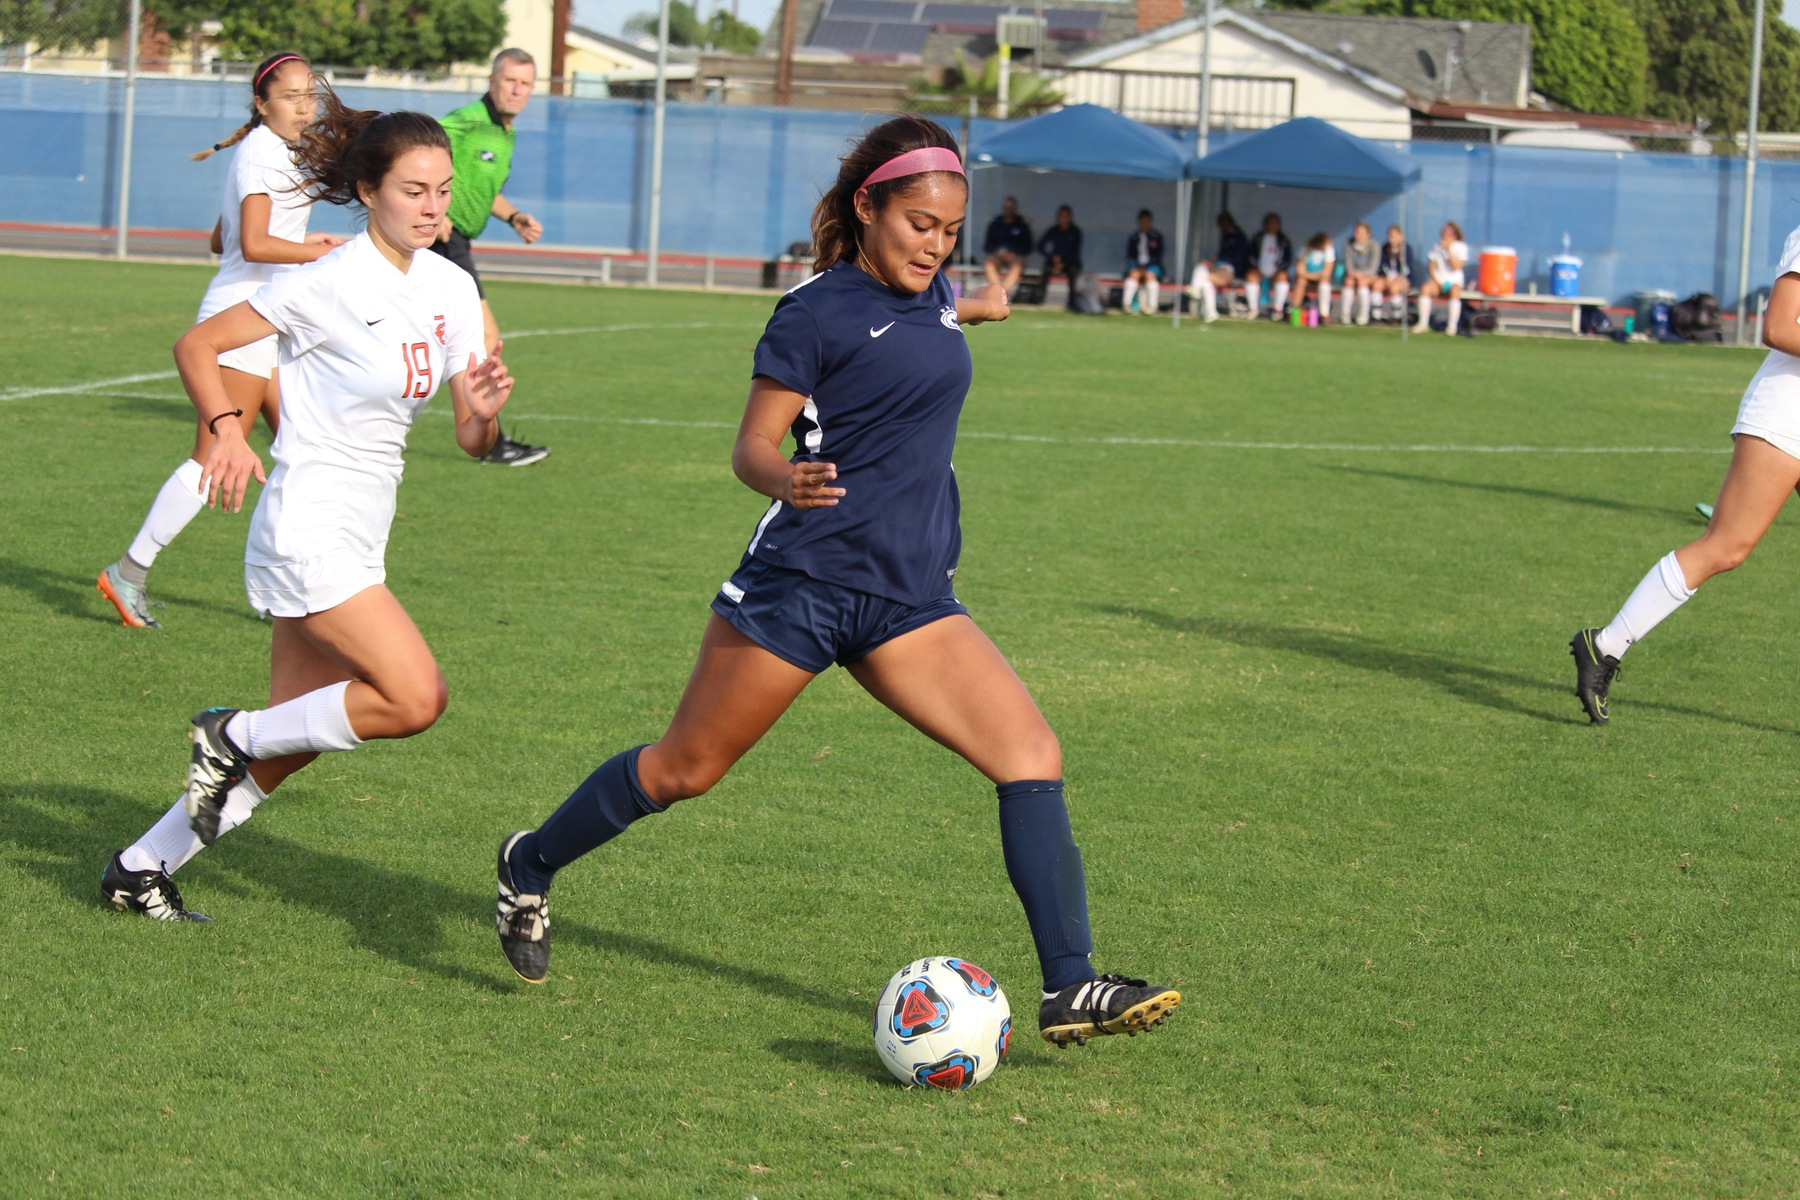 Chargers Hang On to Defeat Pirates on Sophomore Day, 1-0